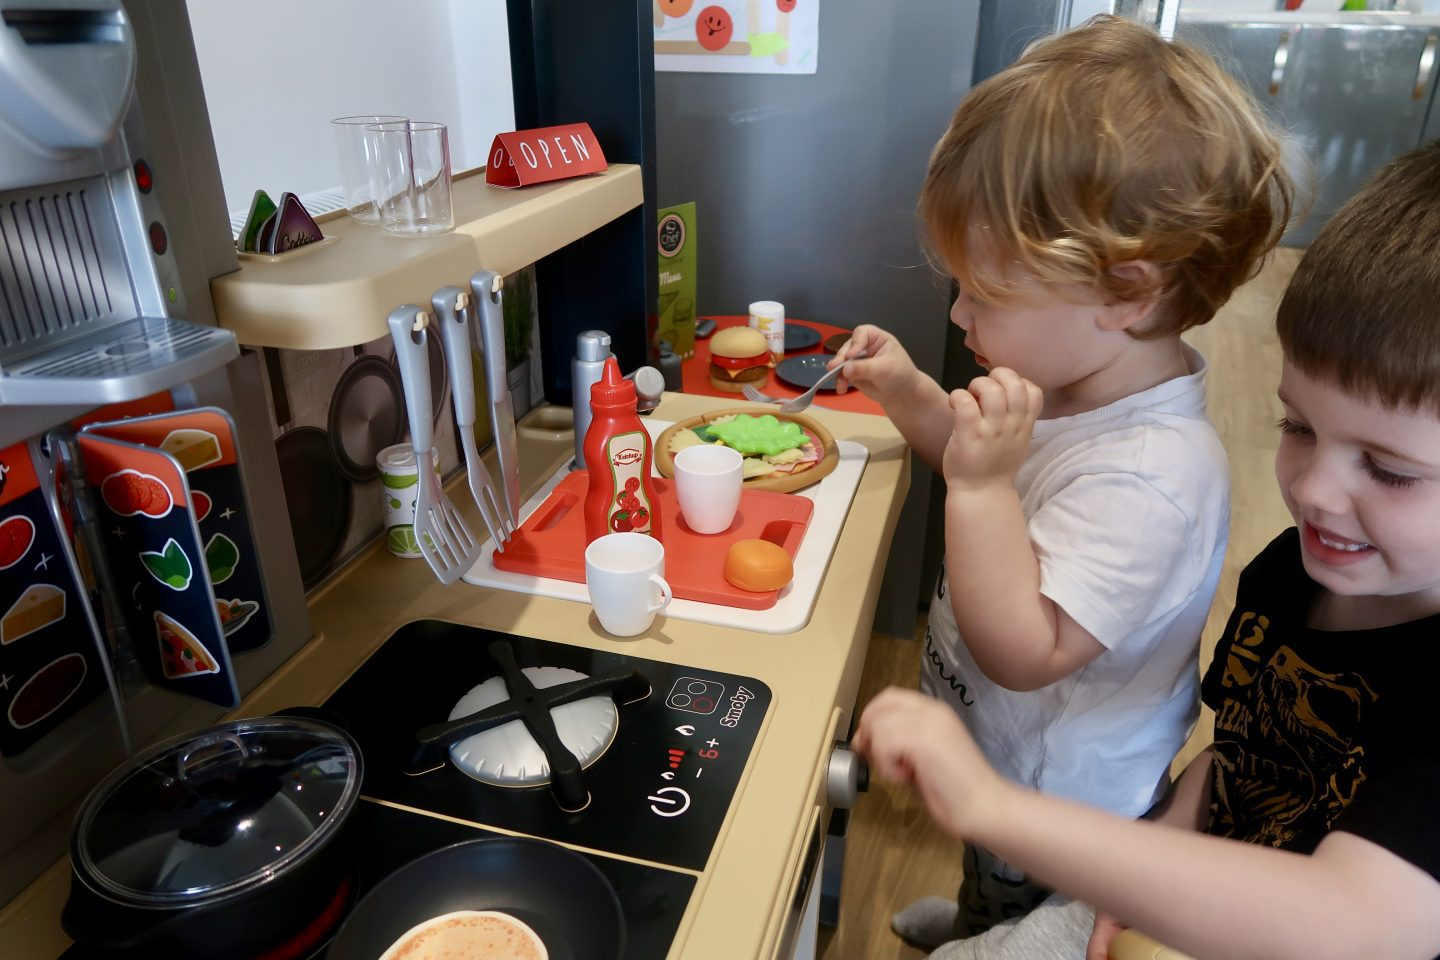 Two children playing with a toy kitchen